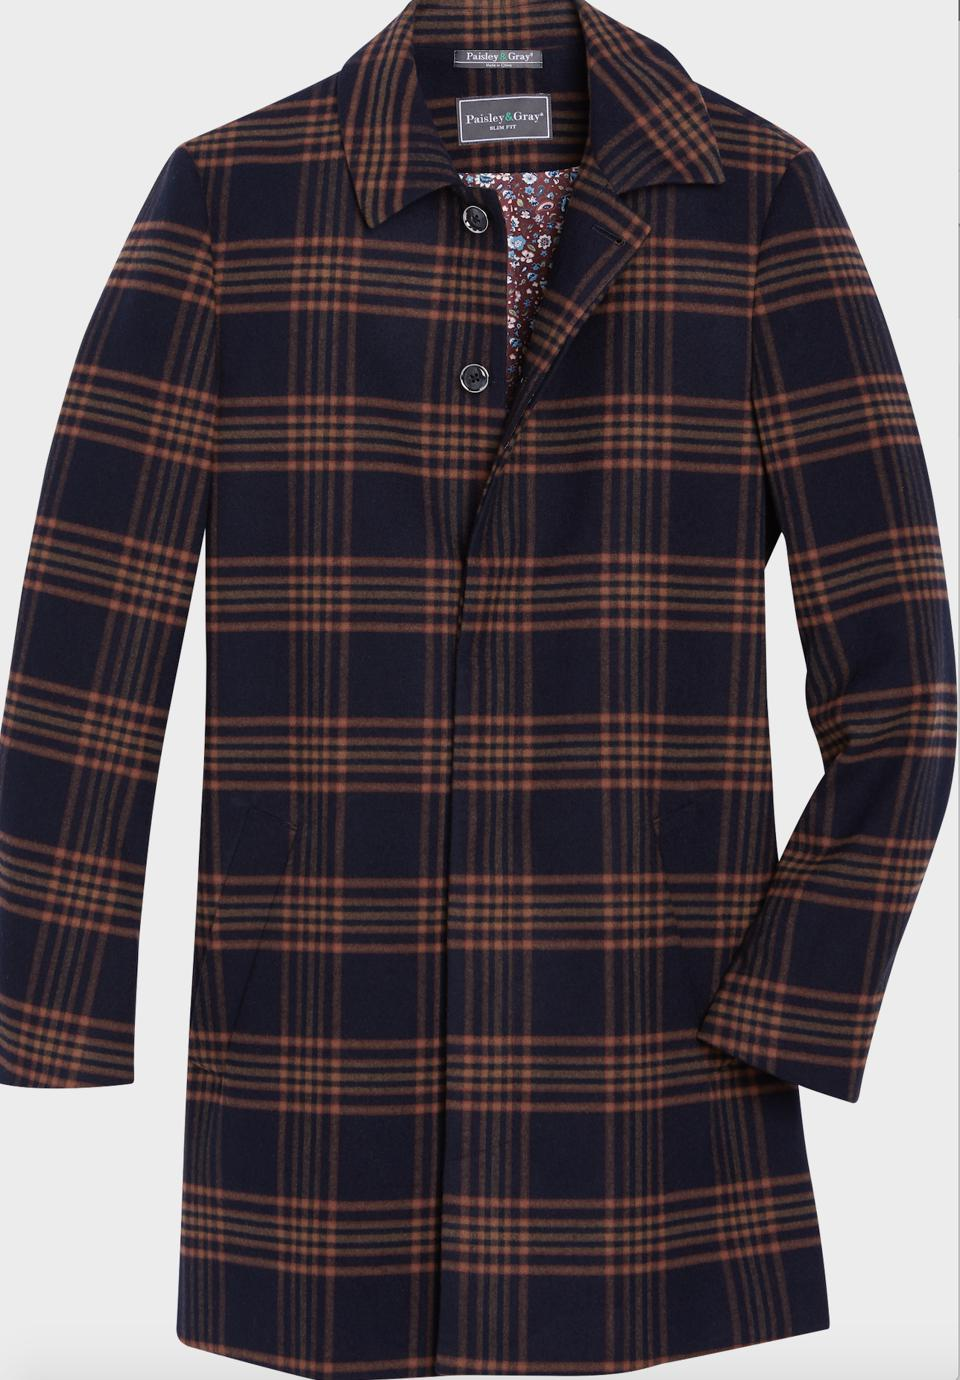 Paisley & Gray Slim Fit Car Coat in Orange & Navy Plaid